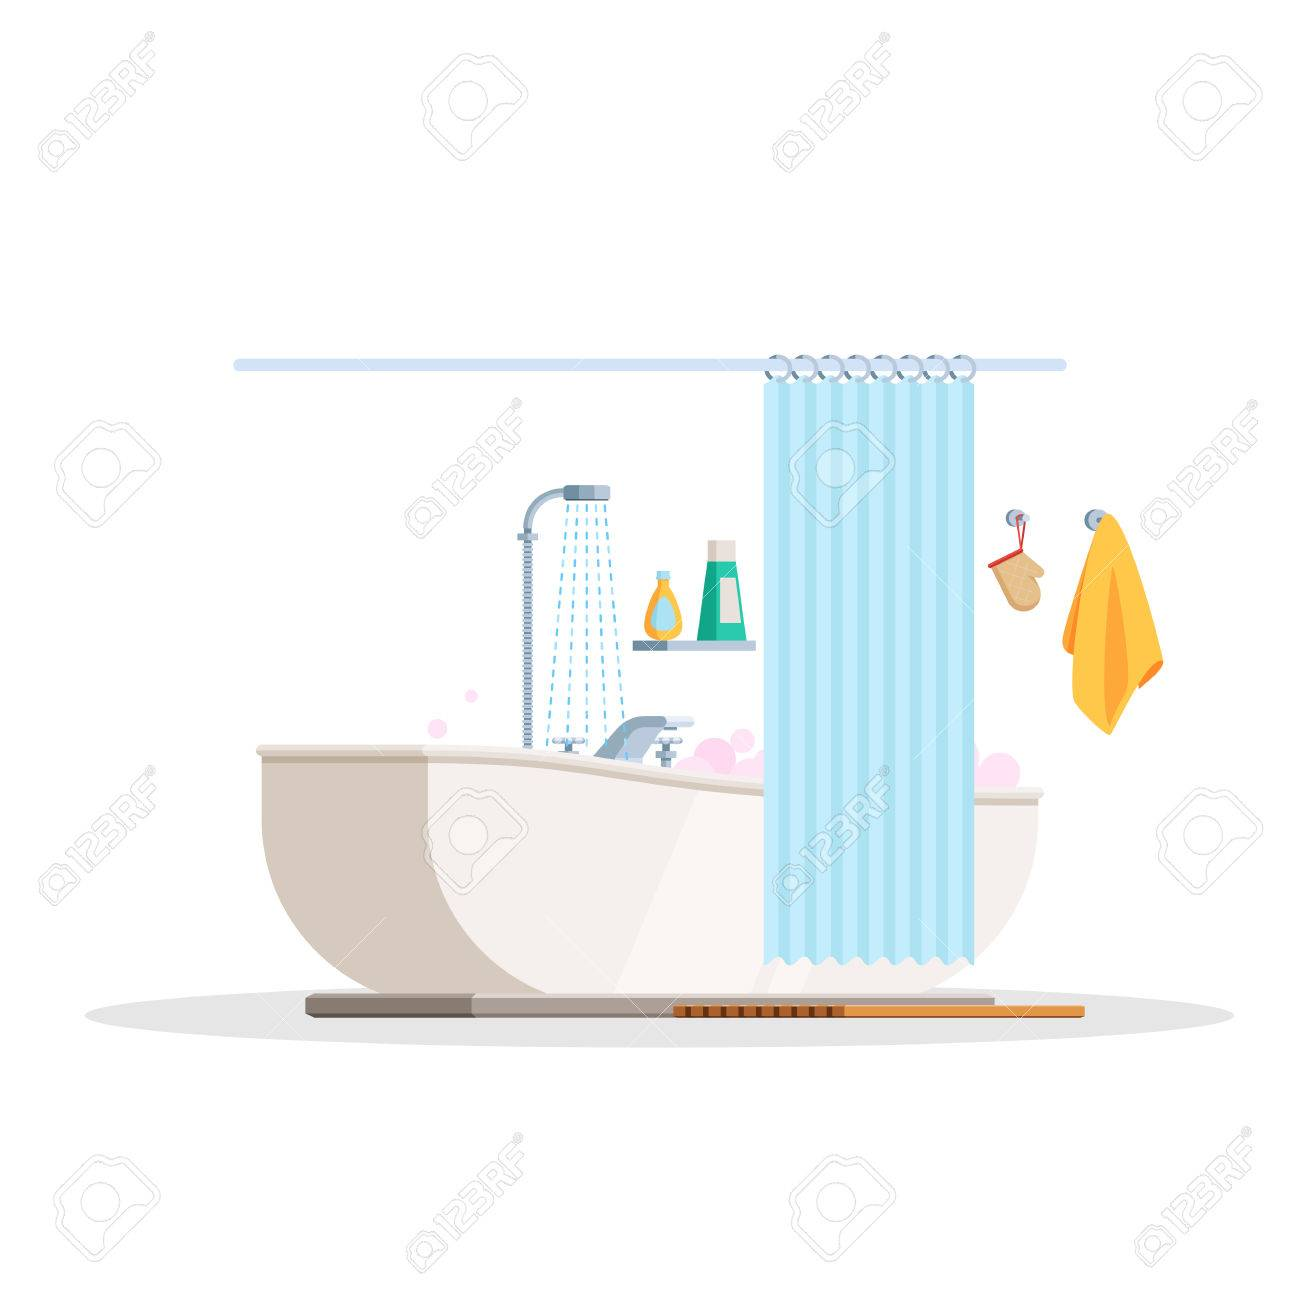 Scene Is A Bathroom Interior Bubble Bath And Shower Curtain Vector Illustration In Trendy